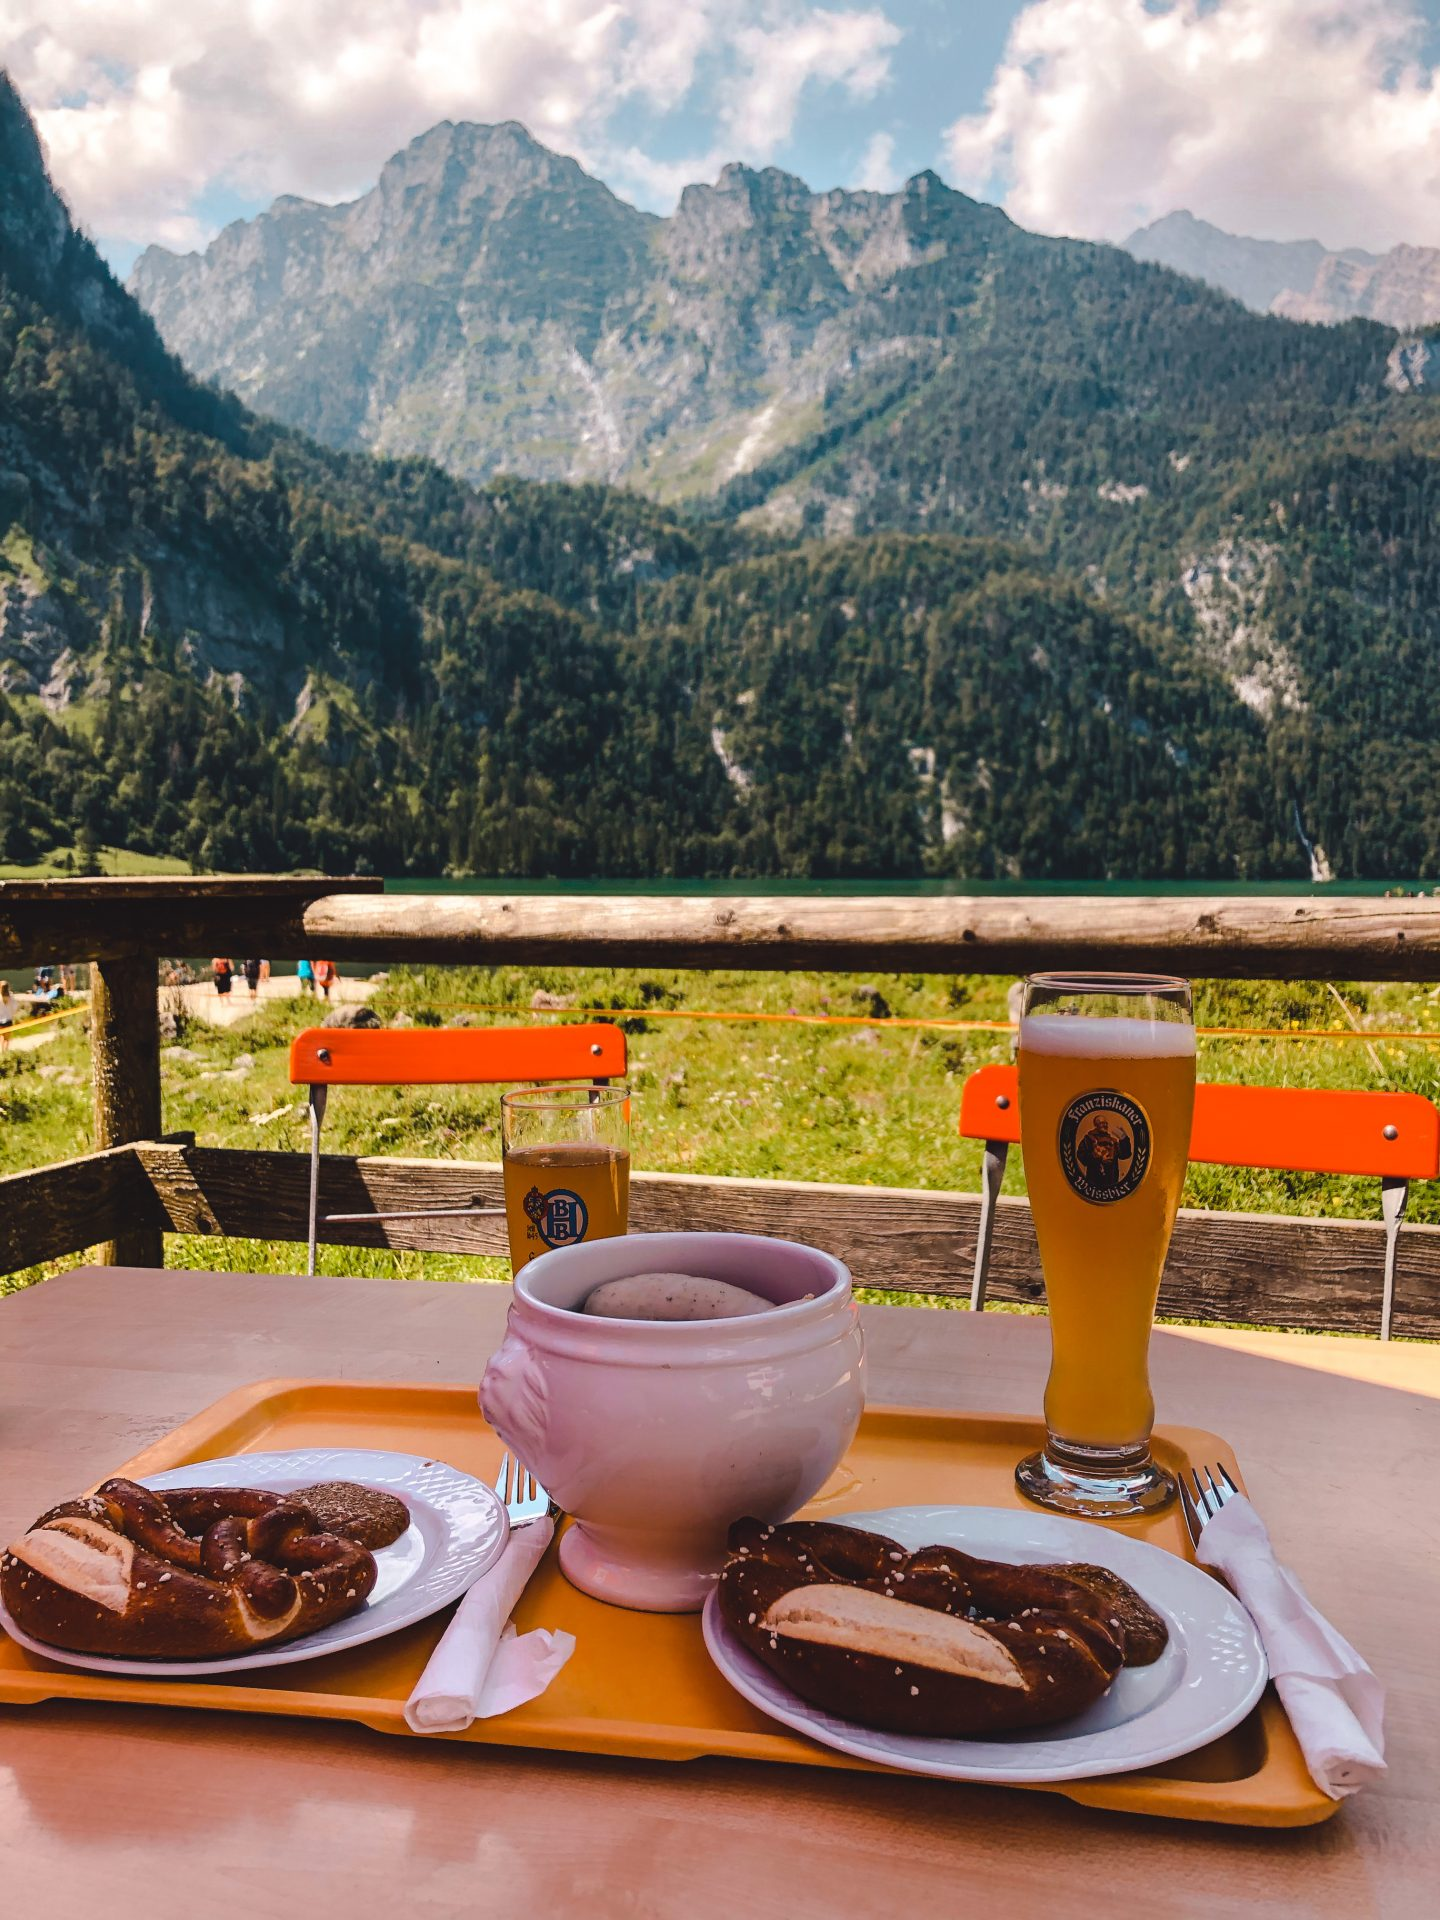 A traditional Bavarian breakfast containing white sausages and white beer and a pretzel